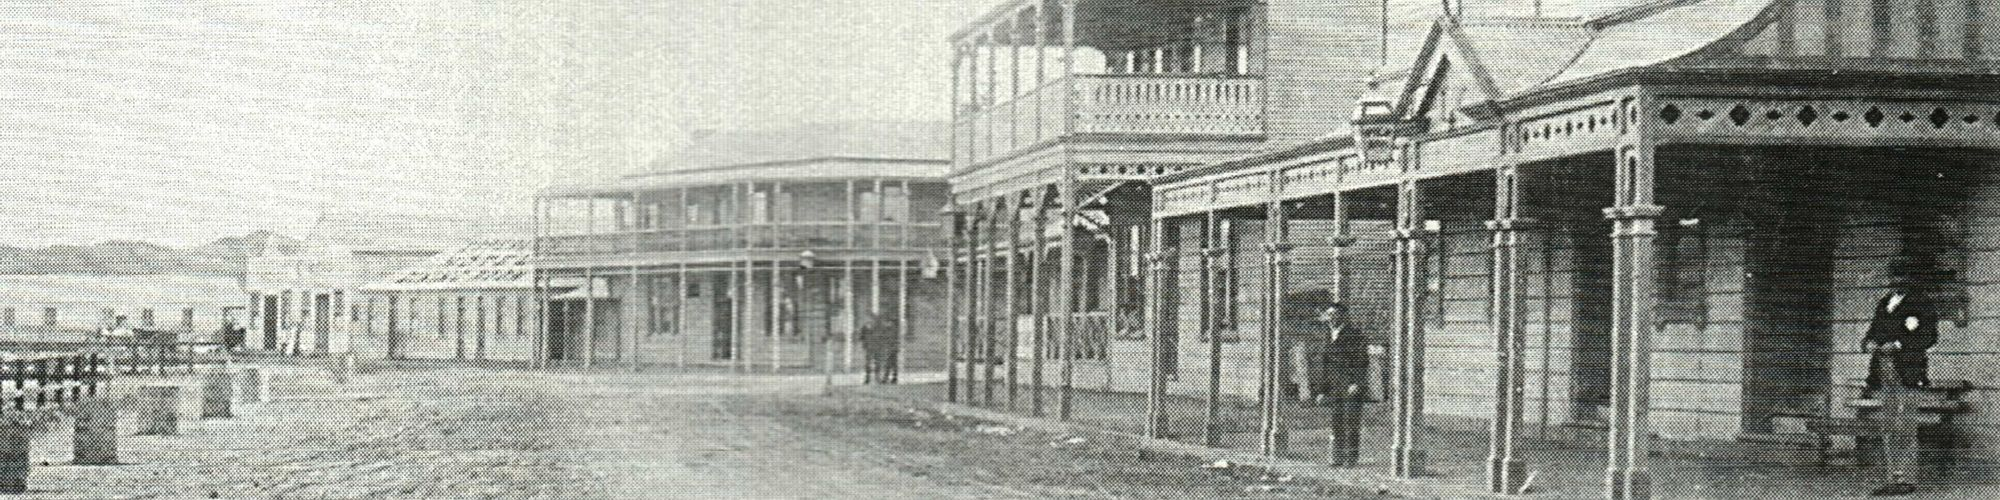 1898 Edward St (Later the Esplanade)